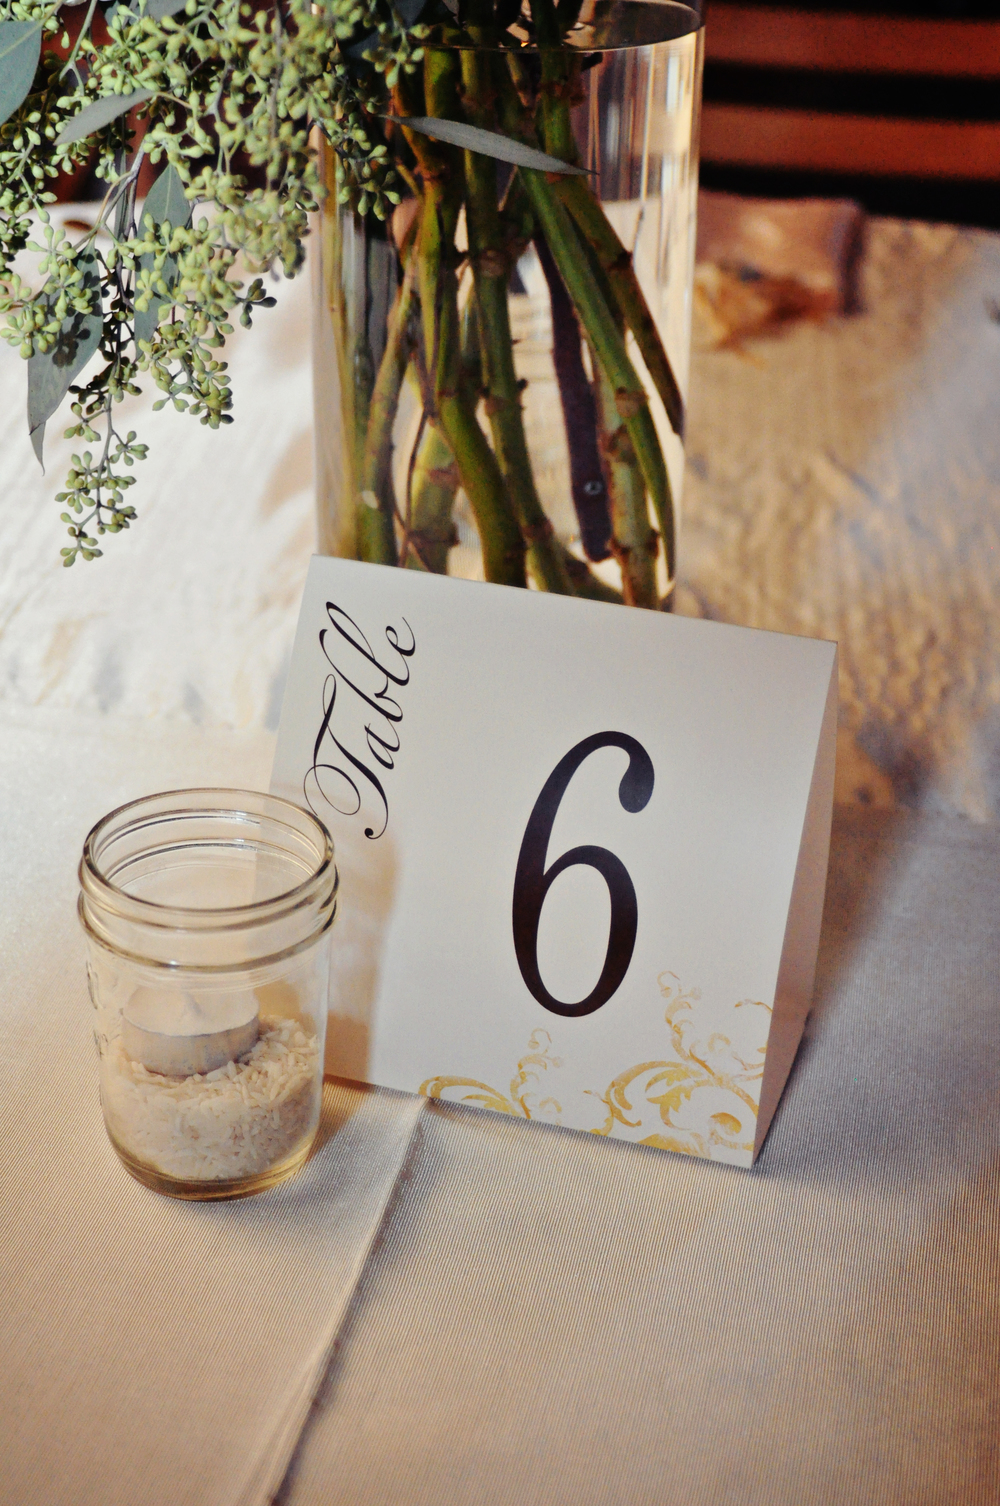 Rustic White, Pratt Place Inn & Barn, Bettencourt Chase Photography, Table Decor